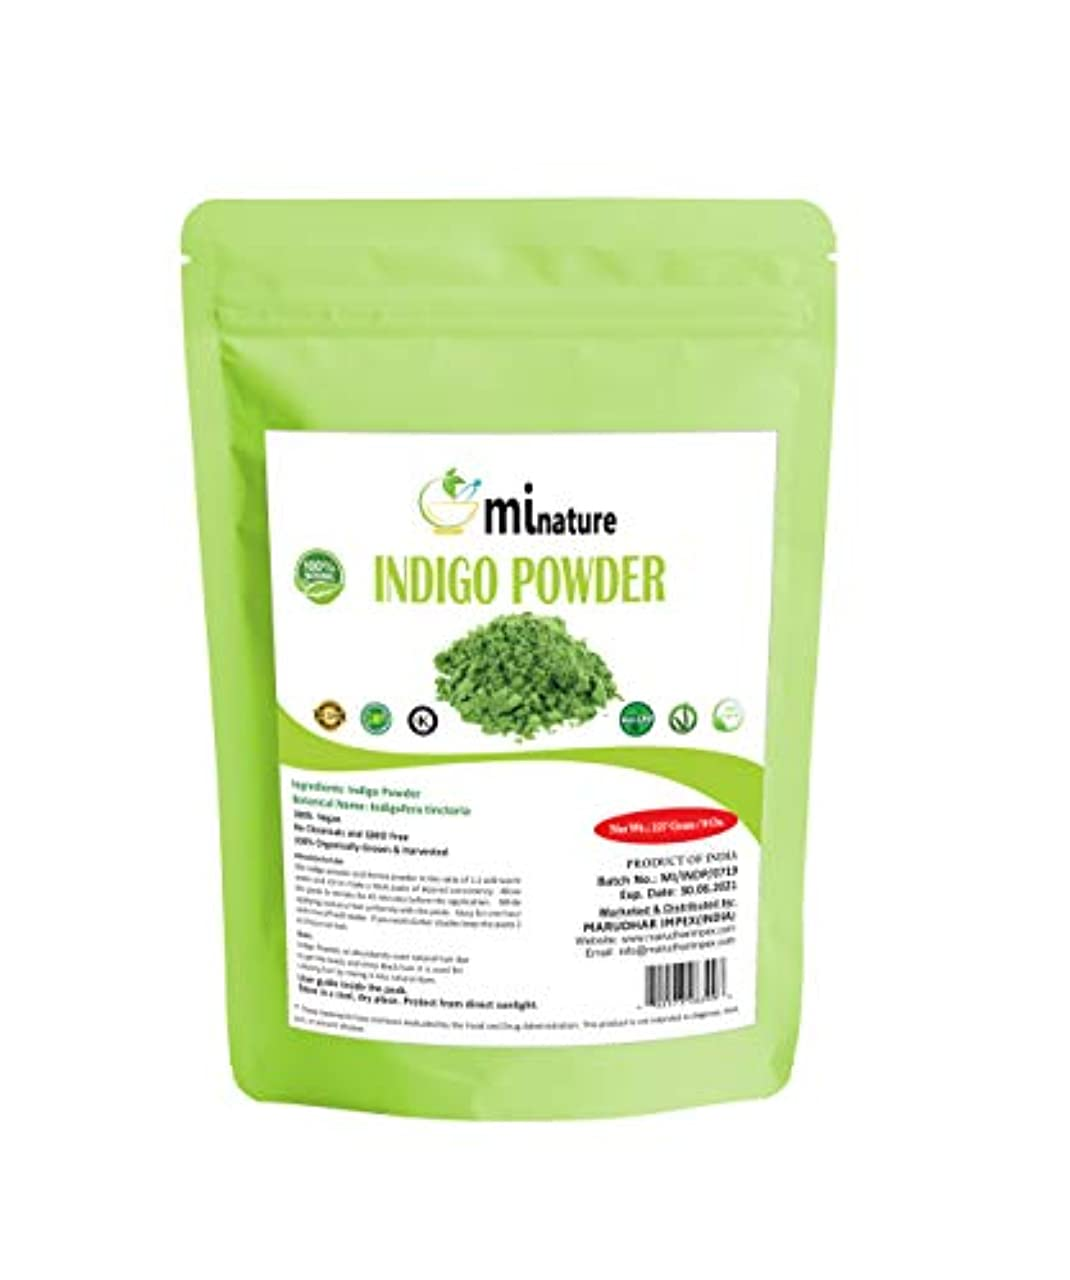 暗殺者嵐グラディスmi nature Indigo Powder -INDIGOFERA TINCTORIA ,(100% NATURAL , ORGANICALLY GROWN ) 1/2 LB (227 grams) RESEALABLE...